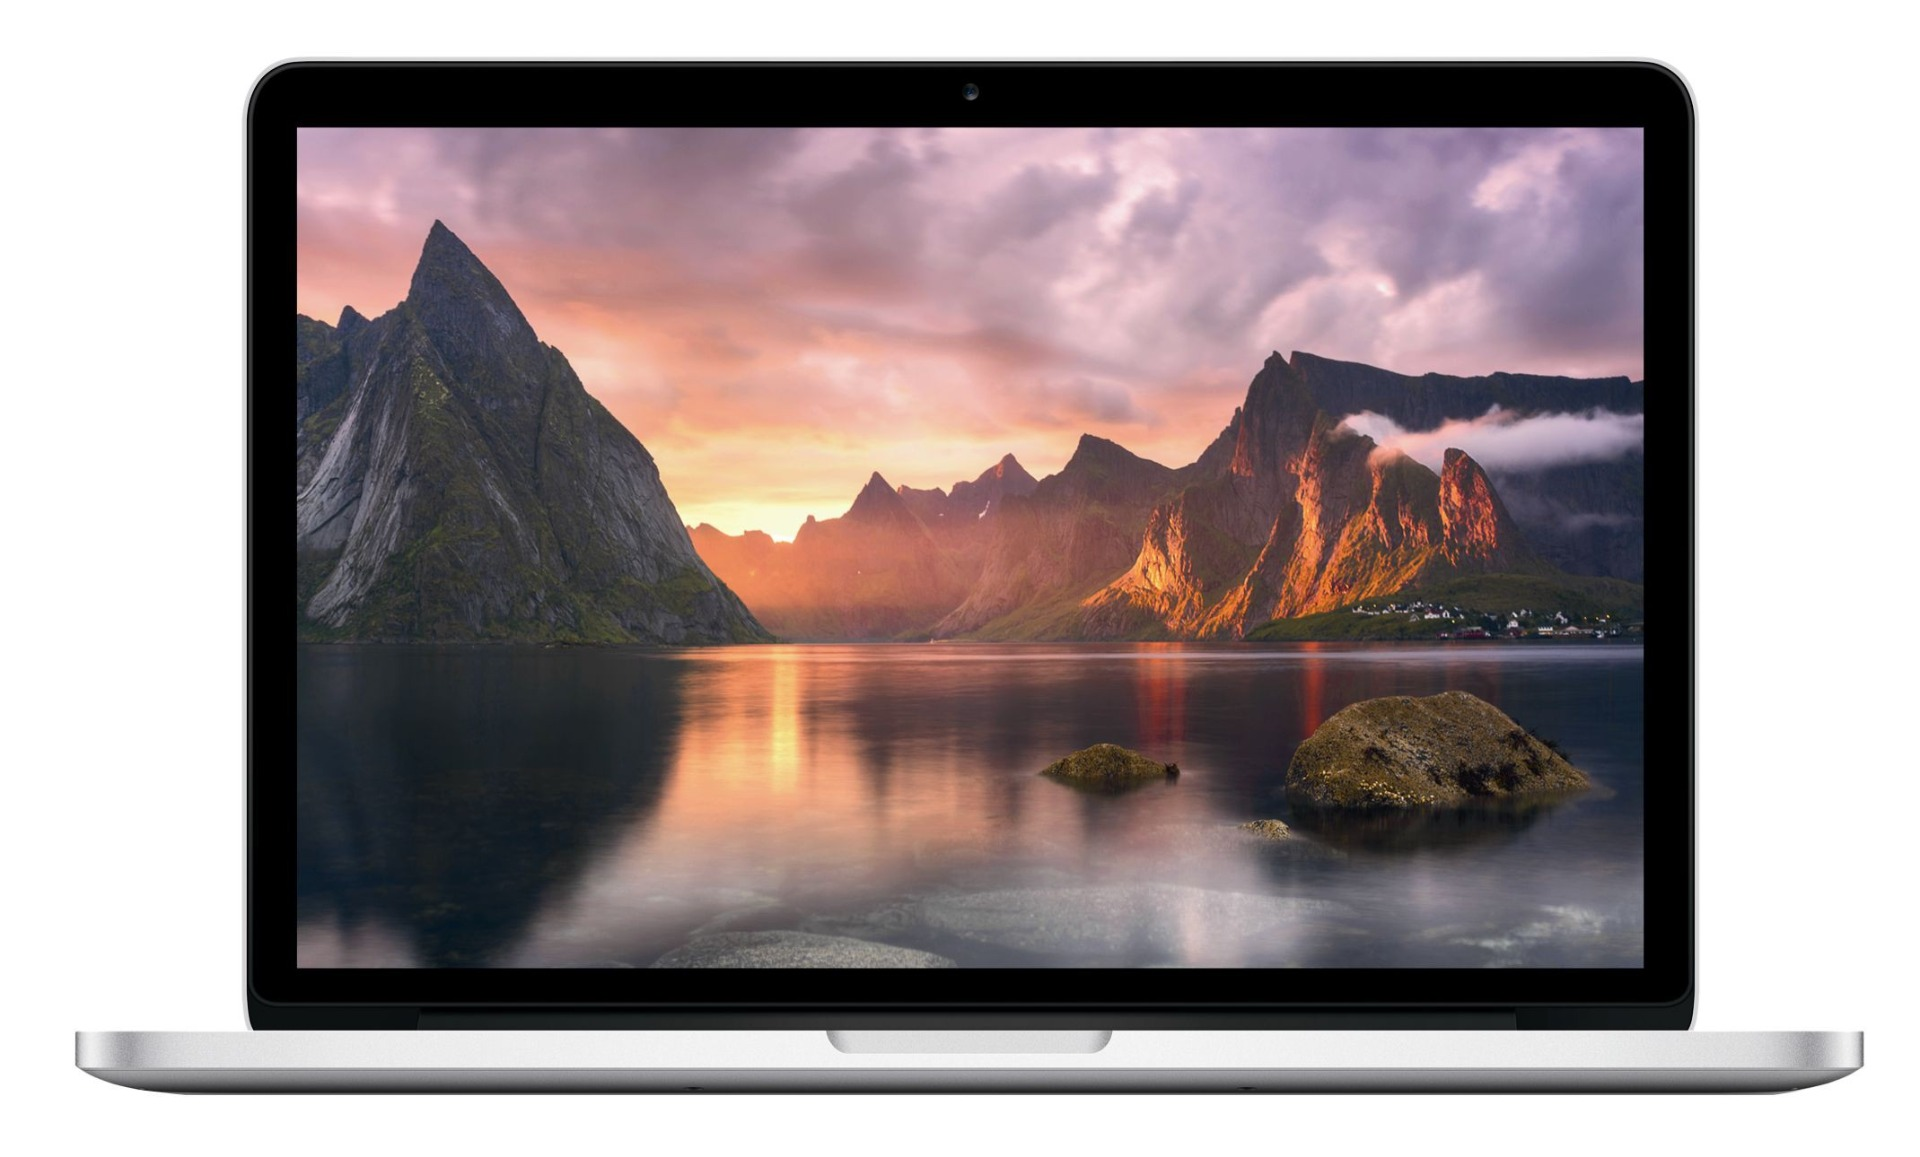 Refurbished Macbook Retina 15.4 | 8GB | 256GB SSD